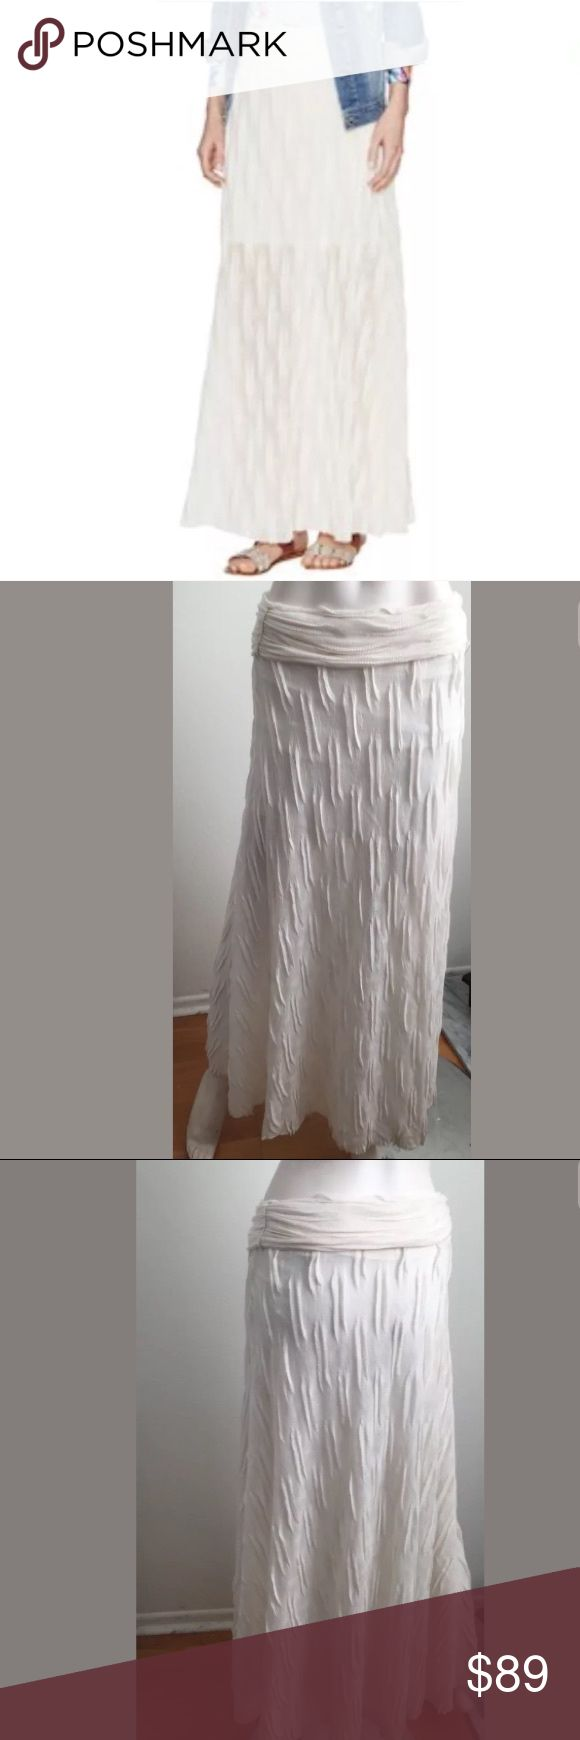 T-bags Ivory Gauzy Maxi Skirt Gorgeous gauzy textured skirt by T Bags Los Angeles. Maxi length. Off white / Ivory Color. Has partial lining. Perfect bohemians style skirt.  Has a small stain near the waistband. Barely noticeable. (See photos). T-Bags Skirts